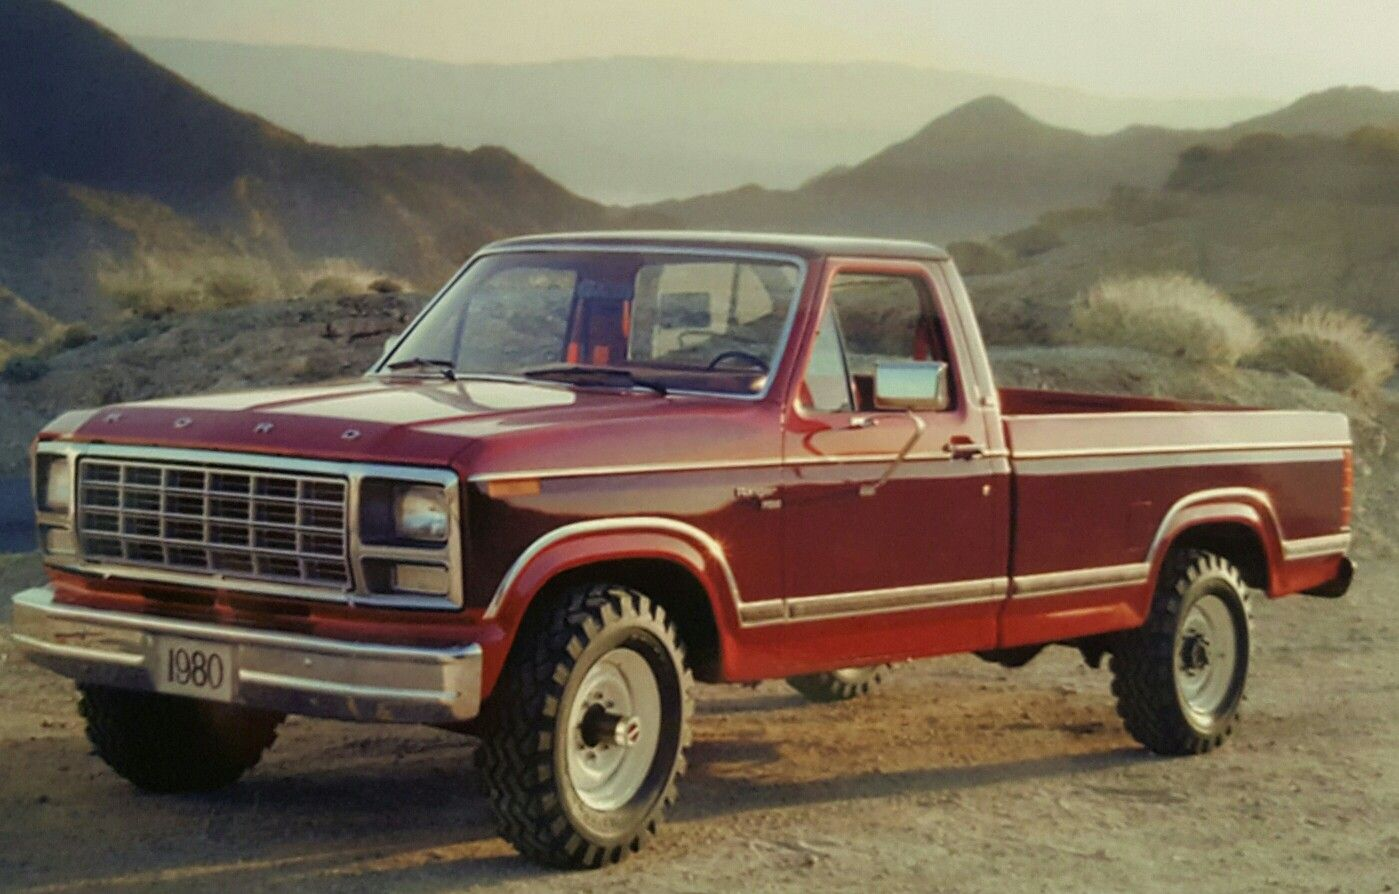 1980 ford ranger xlt 4x4 trucks ford pickup trucks. Black Bedroom Furniture Sets. Home Design Ideas